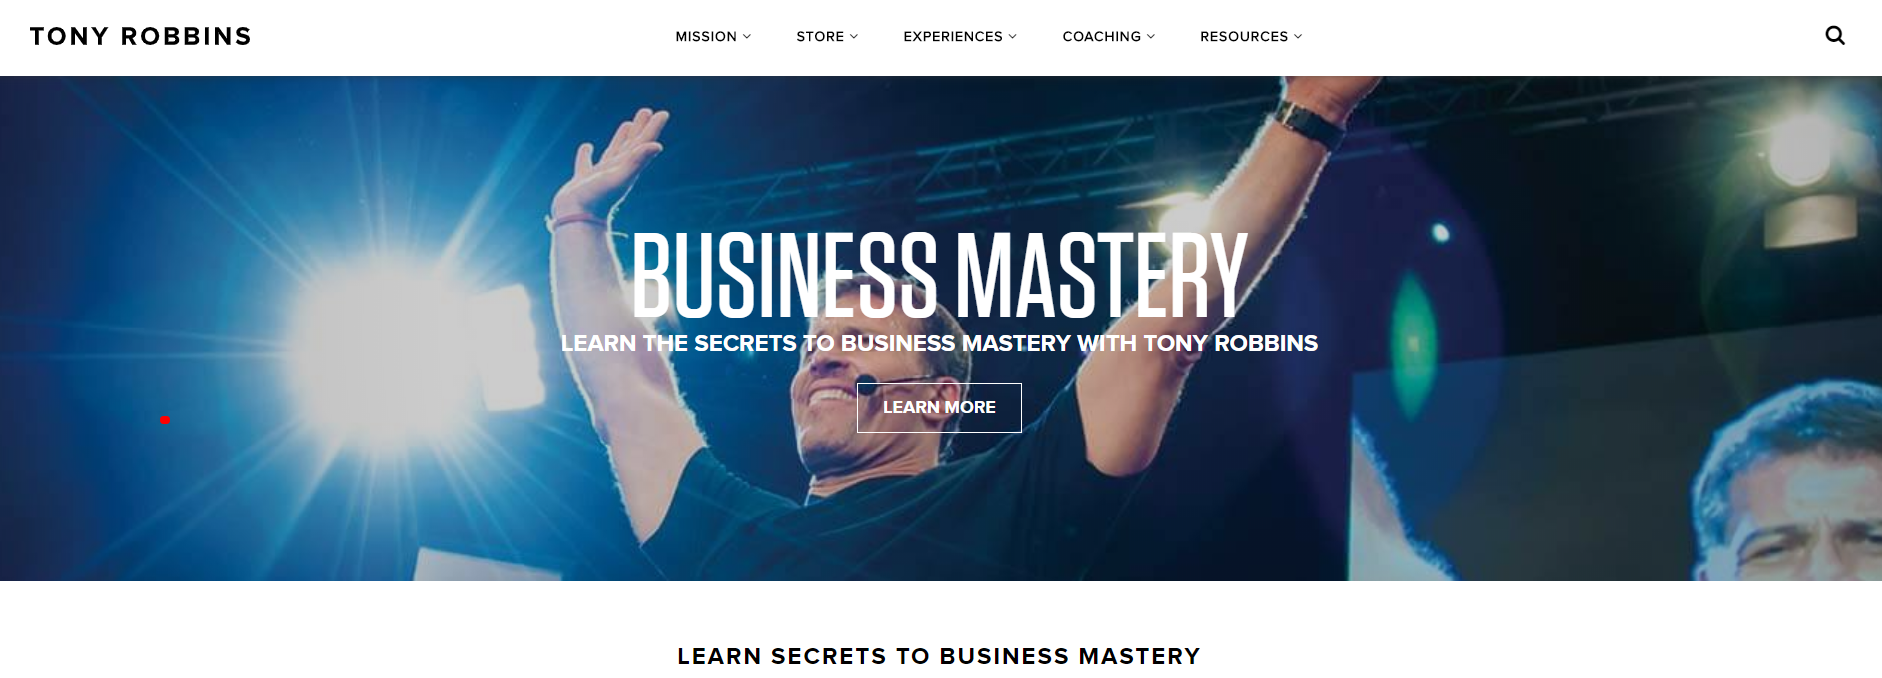 Tony Robbins Workshop Review- Business Mastery Seminar